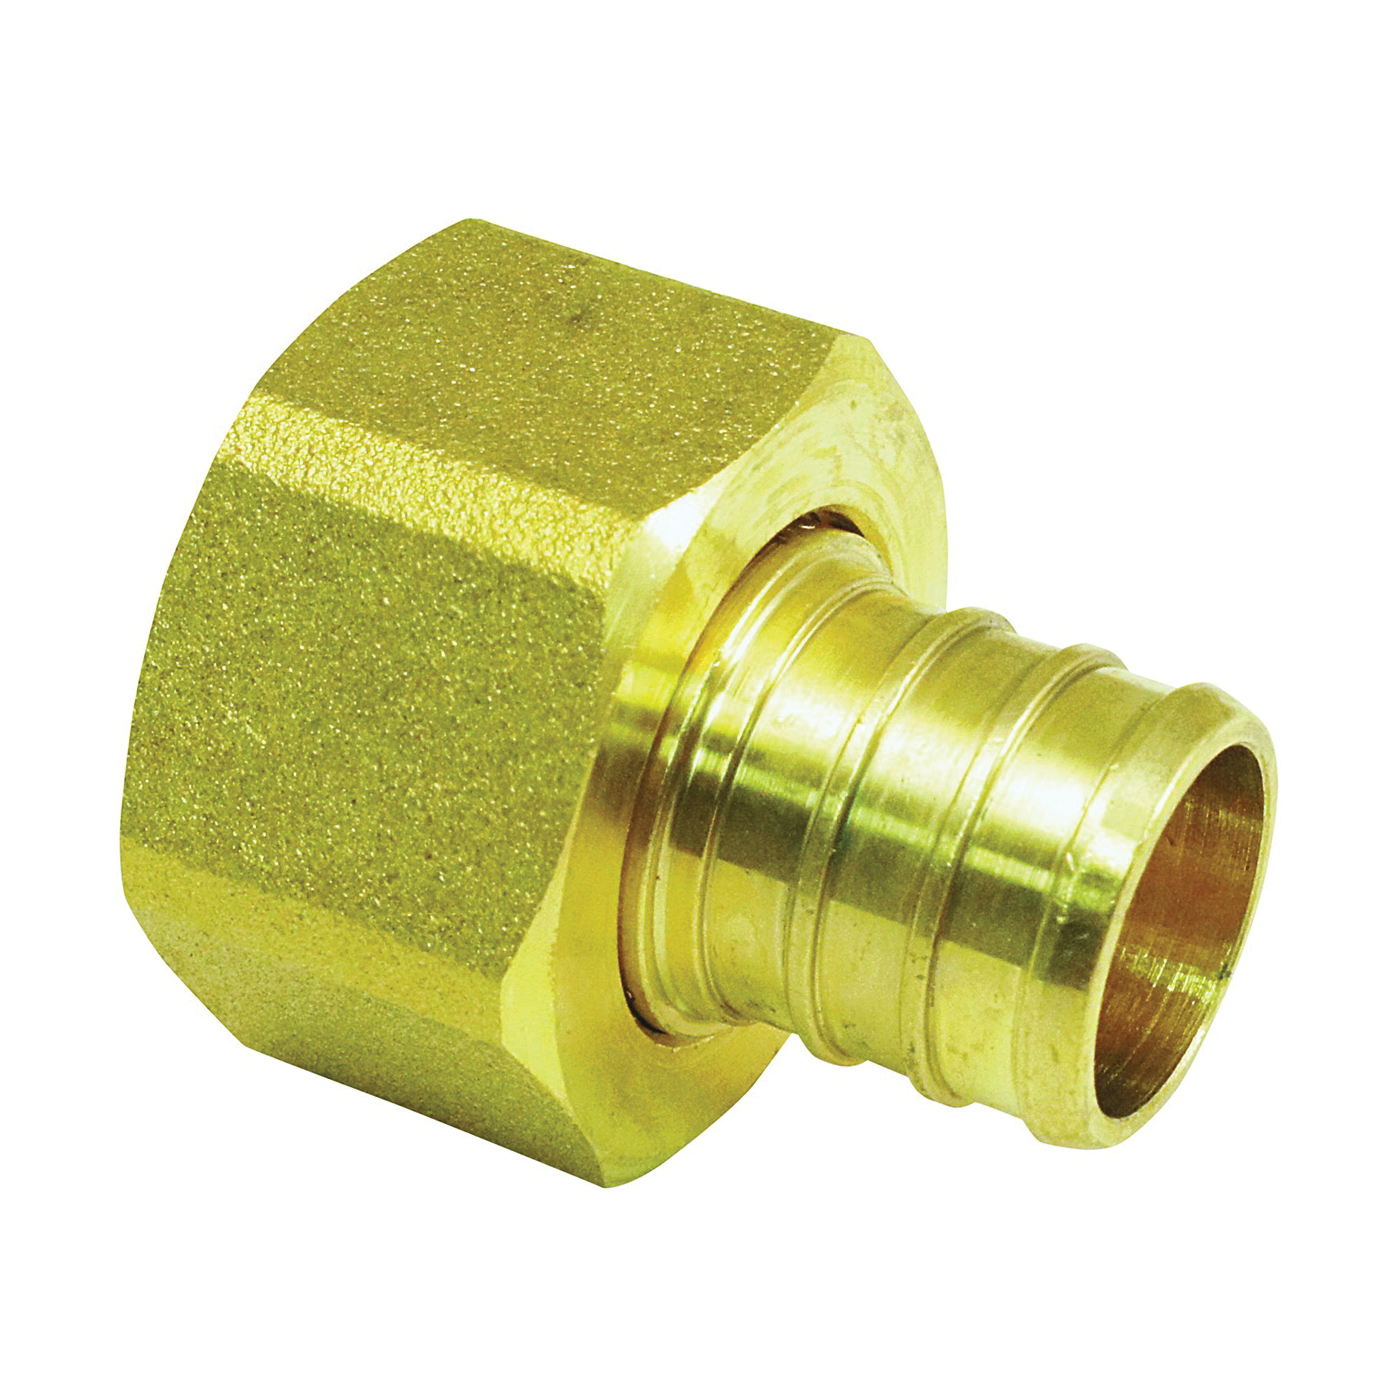 Picture of Apollo APXFF3434S Hose Adapter, 3/4 in Barb, 3/4 in FPT